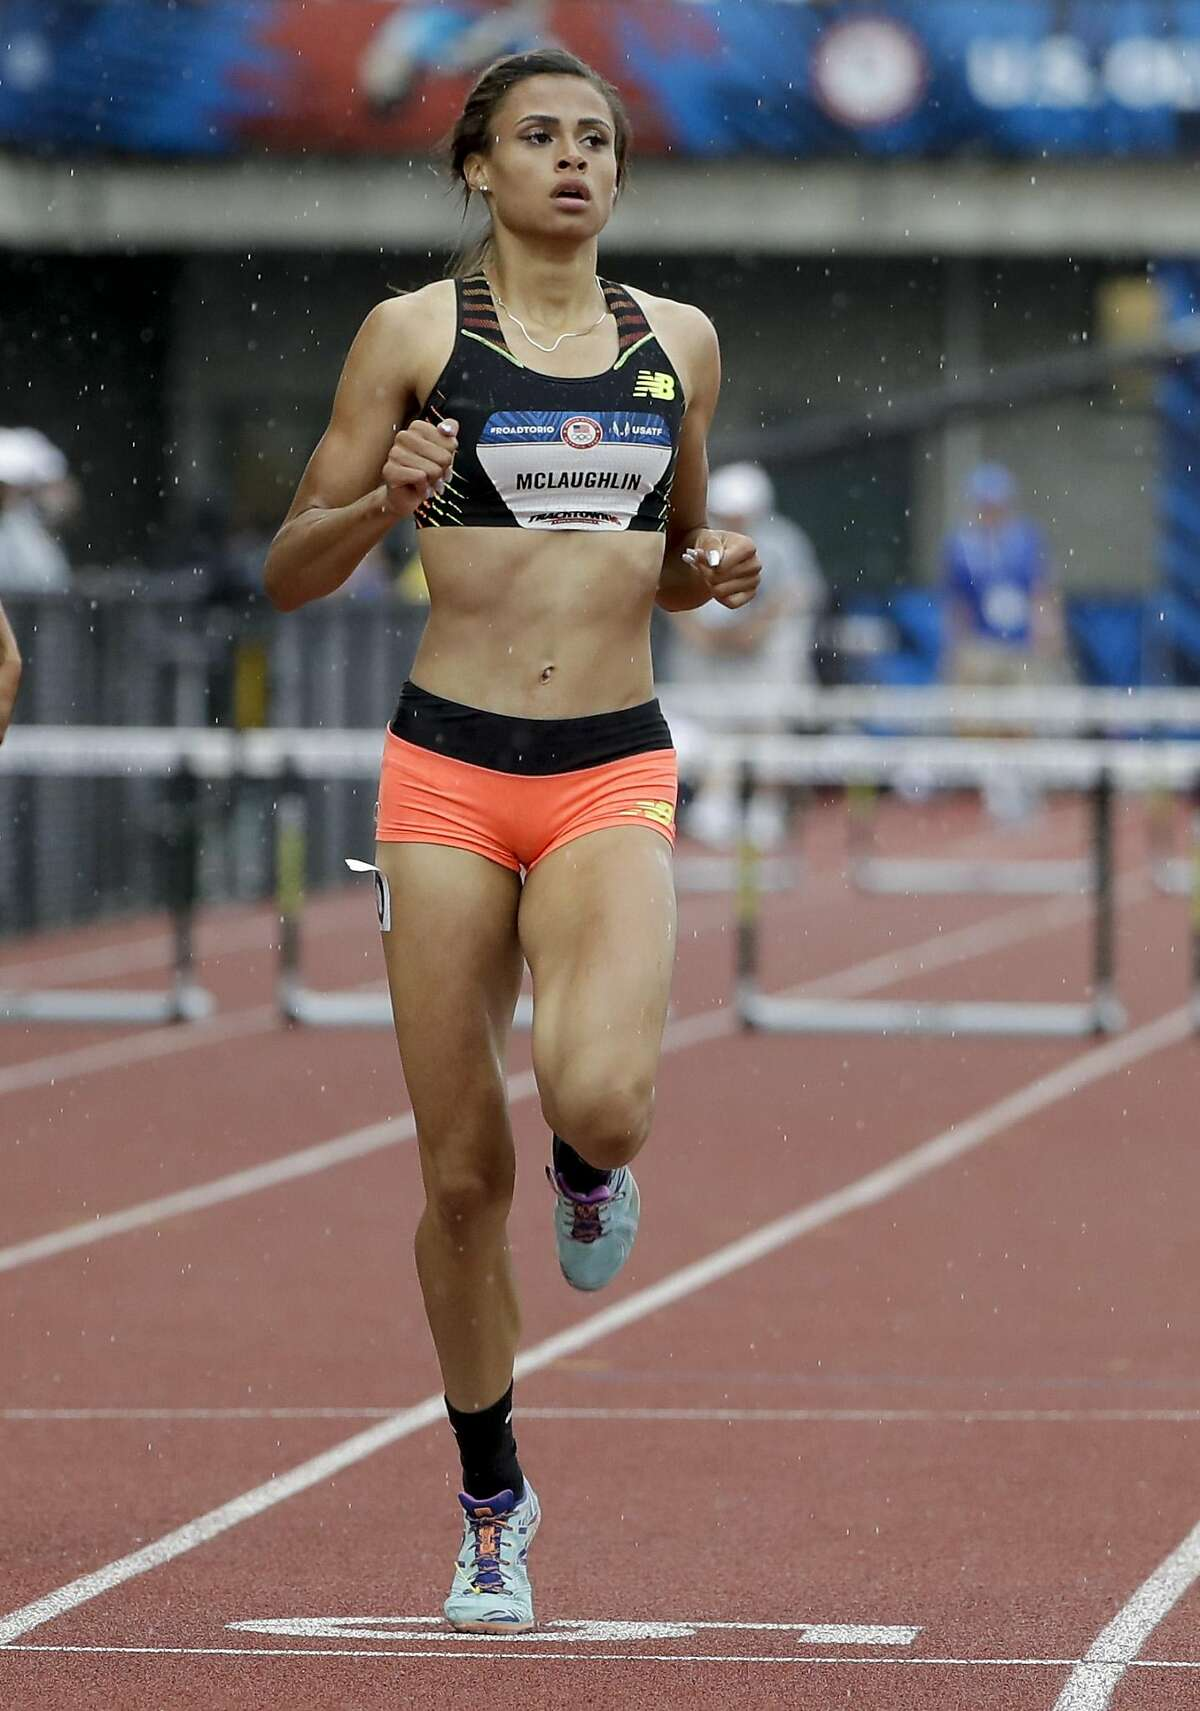 Sydney McLaughlin wins her heat during the women�s 400-meter hurdles at the U.S. Olympic Track and Field Trials, Thursday, July 7, 2016, in Eugene Ore. (AP Photo/Marcio Jose Sanchez)